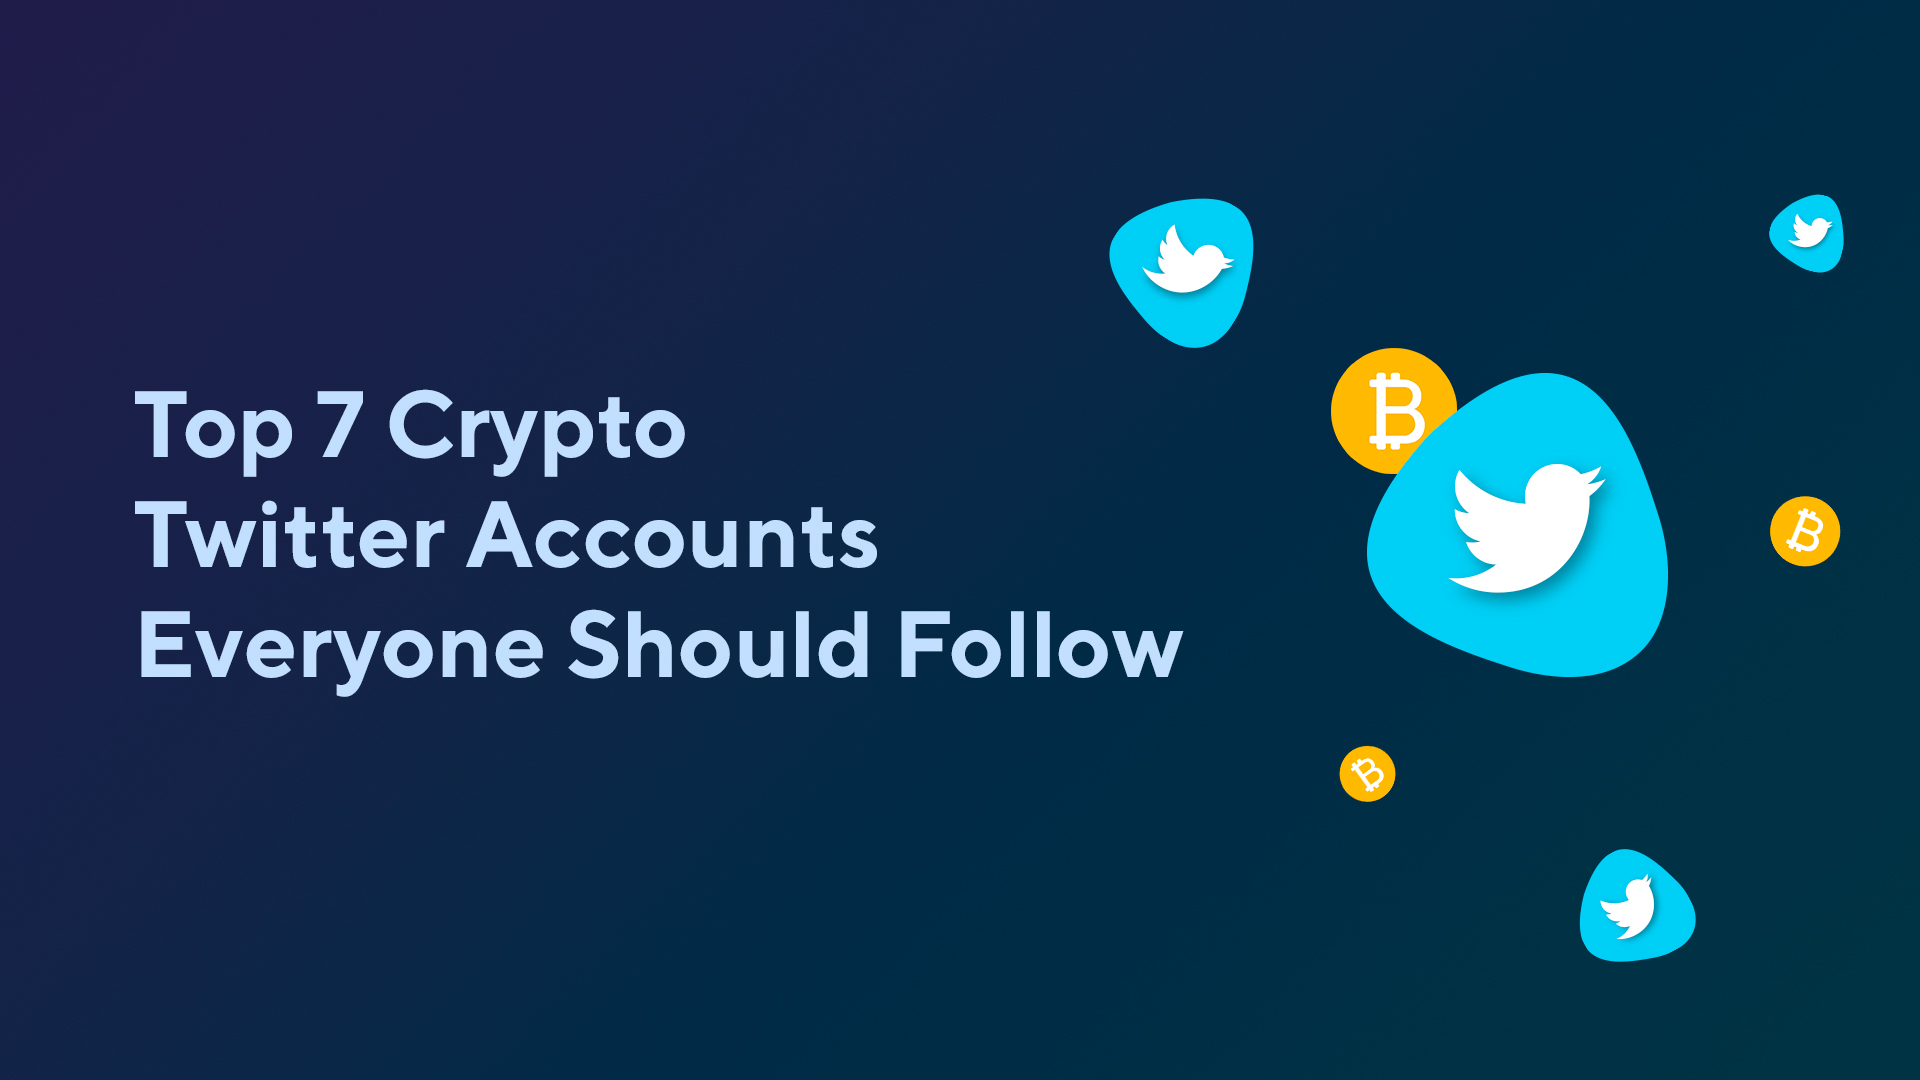 Top 7 Crypto Twitter Accounts Everyone Should Follow